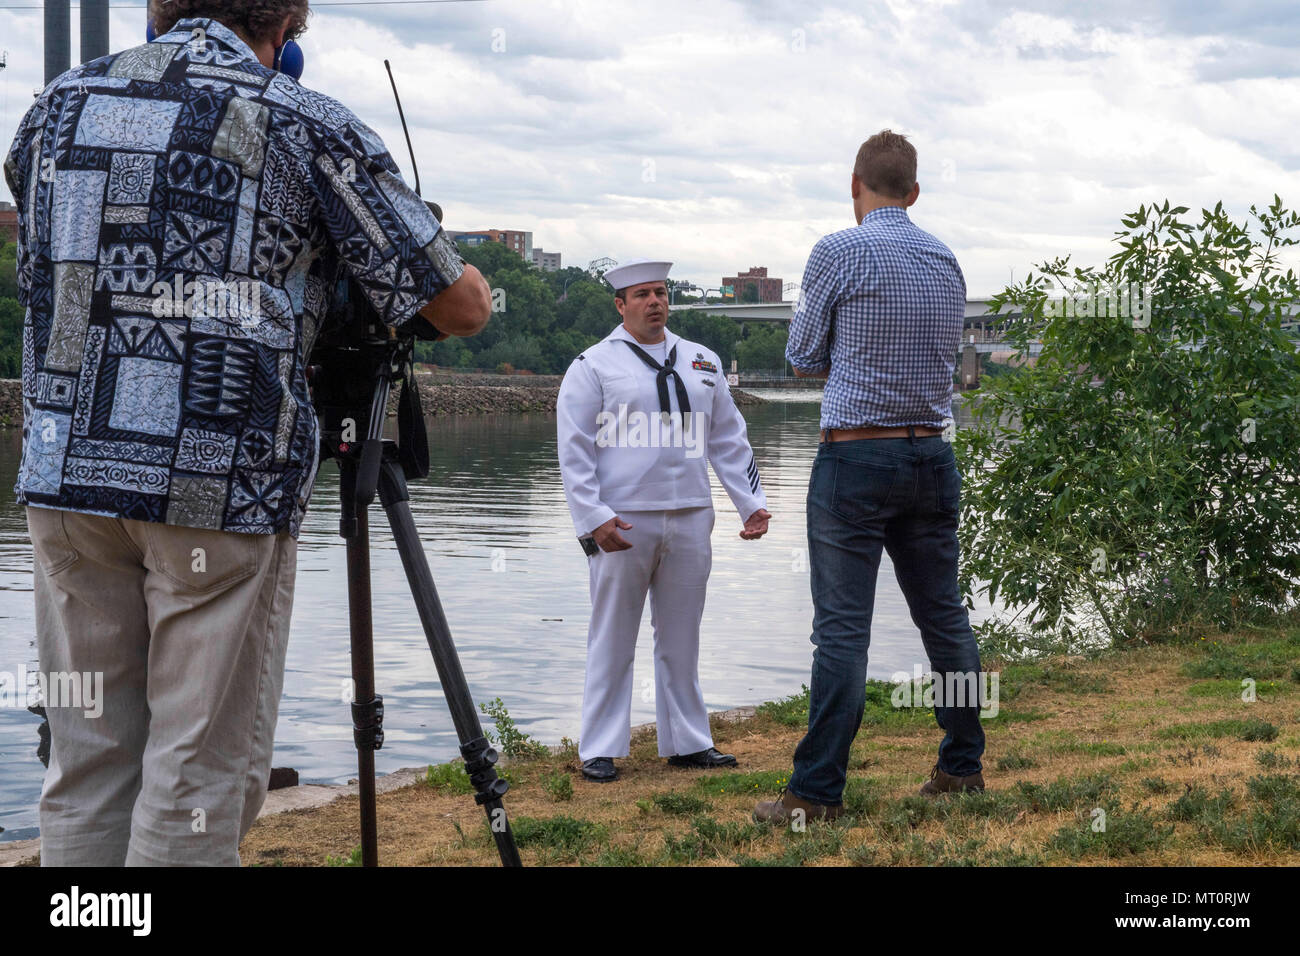 170718-N-CU914-024 MINNEAPOLIS (July 18, 2017) –Navy Diver 1st Class Brian Bennett is interviewed on the bank of the Mississippi River by NBC KARE 11 reporter Kent Erdahl, near the site of the collapse of the I-35W bridge ten years ago, where Bennett was called to assist local, state and federal authorities in finding missing victims, while he was attached to Mobile Diving and Salvage Unit (MDSU) 2. Bennett returned to the area to take part in a wreath laying ceremony during Minneapolis/St. Paul Navy Week, which recognized those who responded to the tragedy and remembered those lost. Navy Week - Stock Image